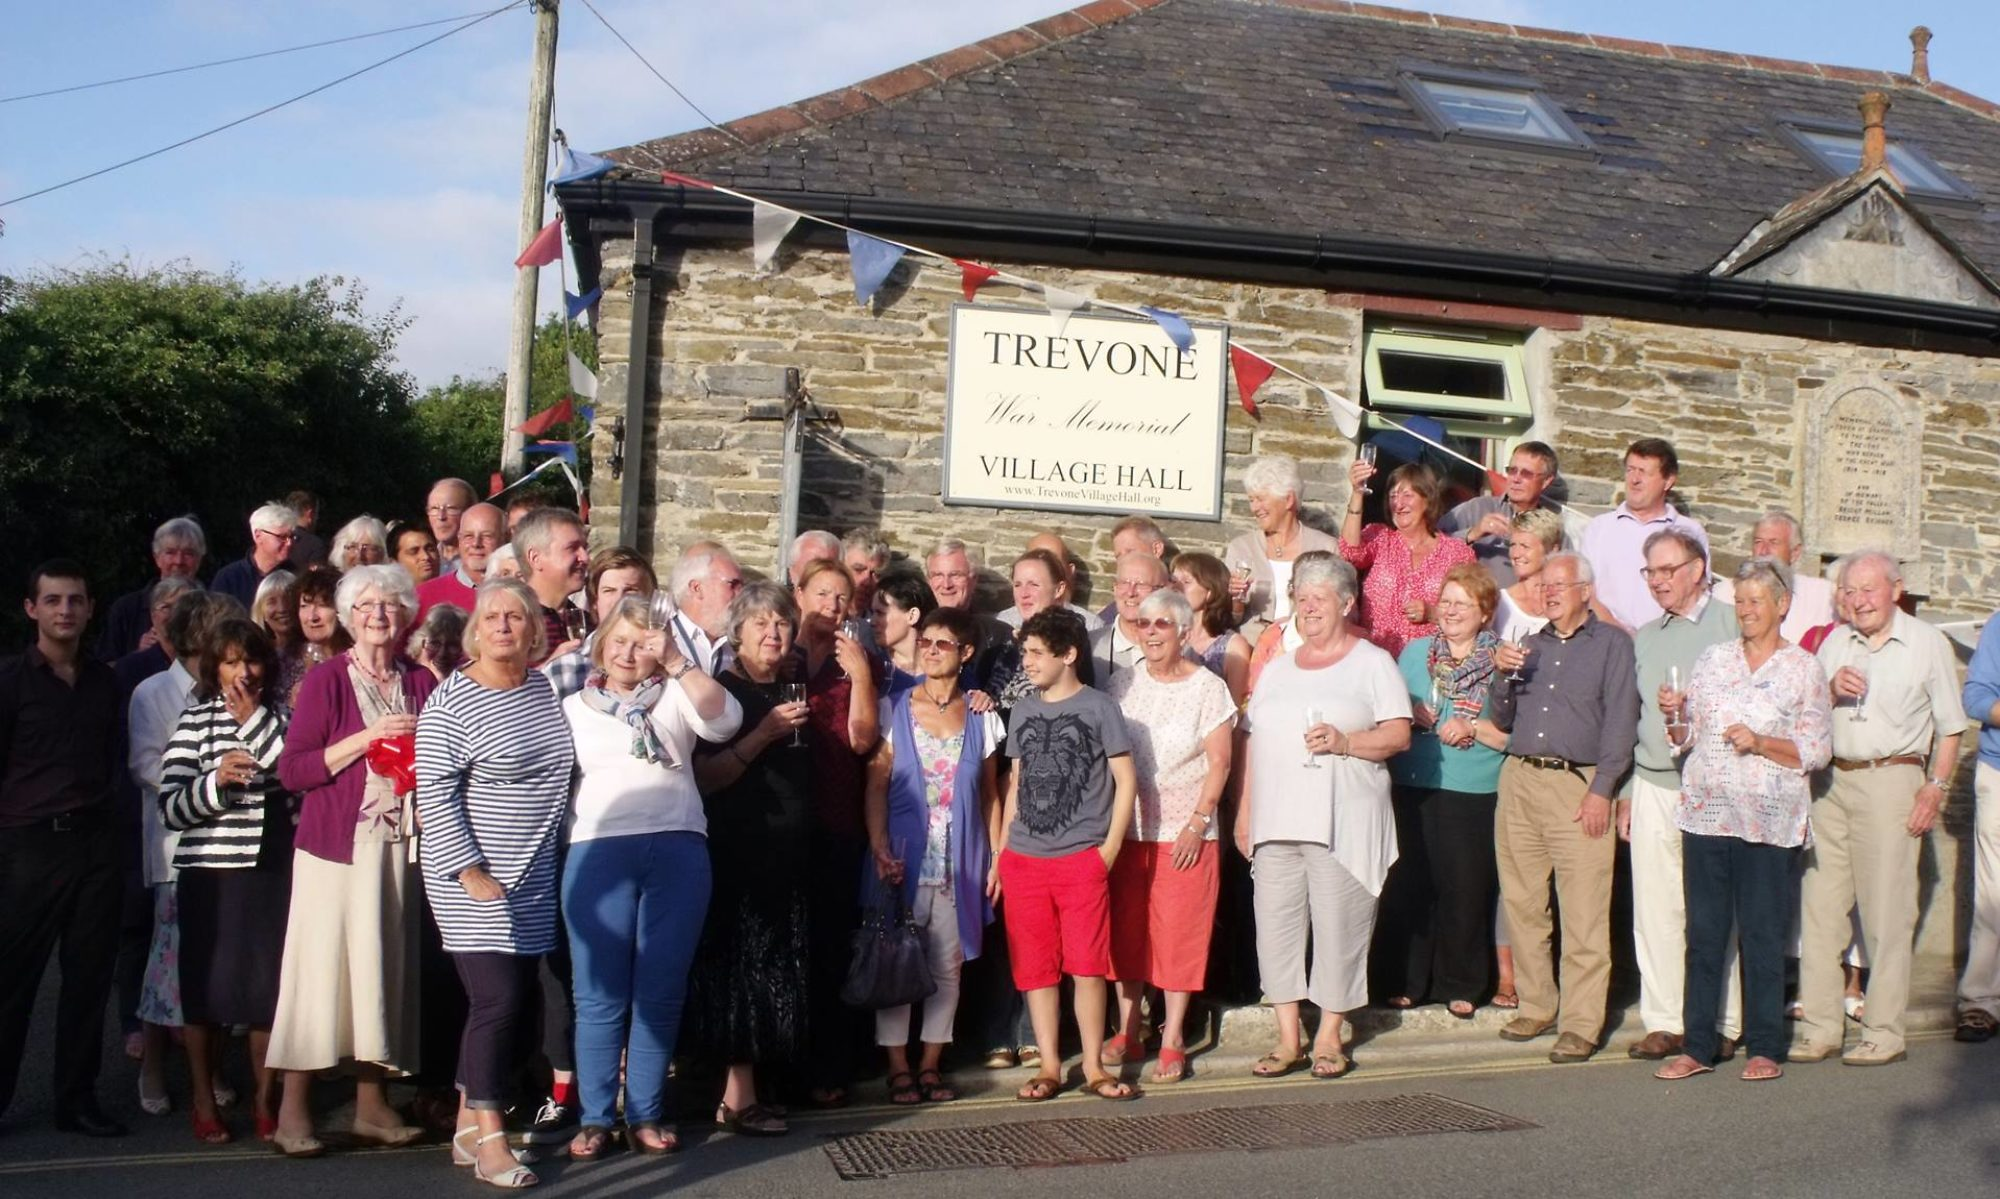 Trevone Village Hall